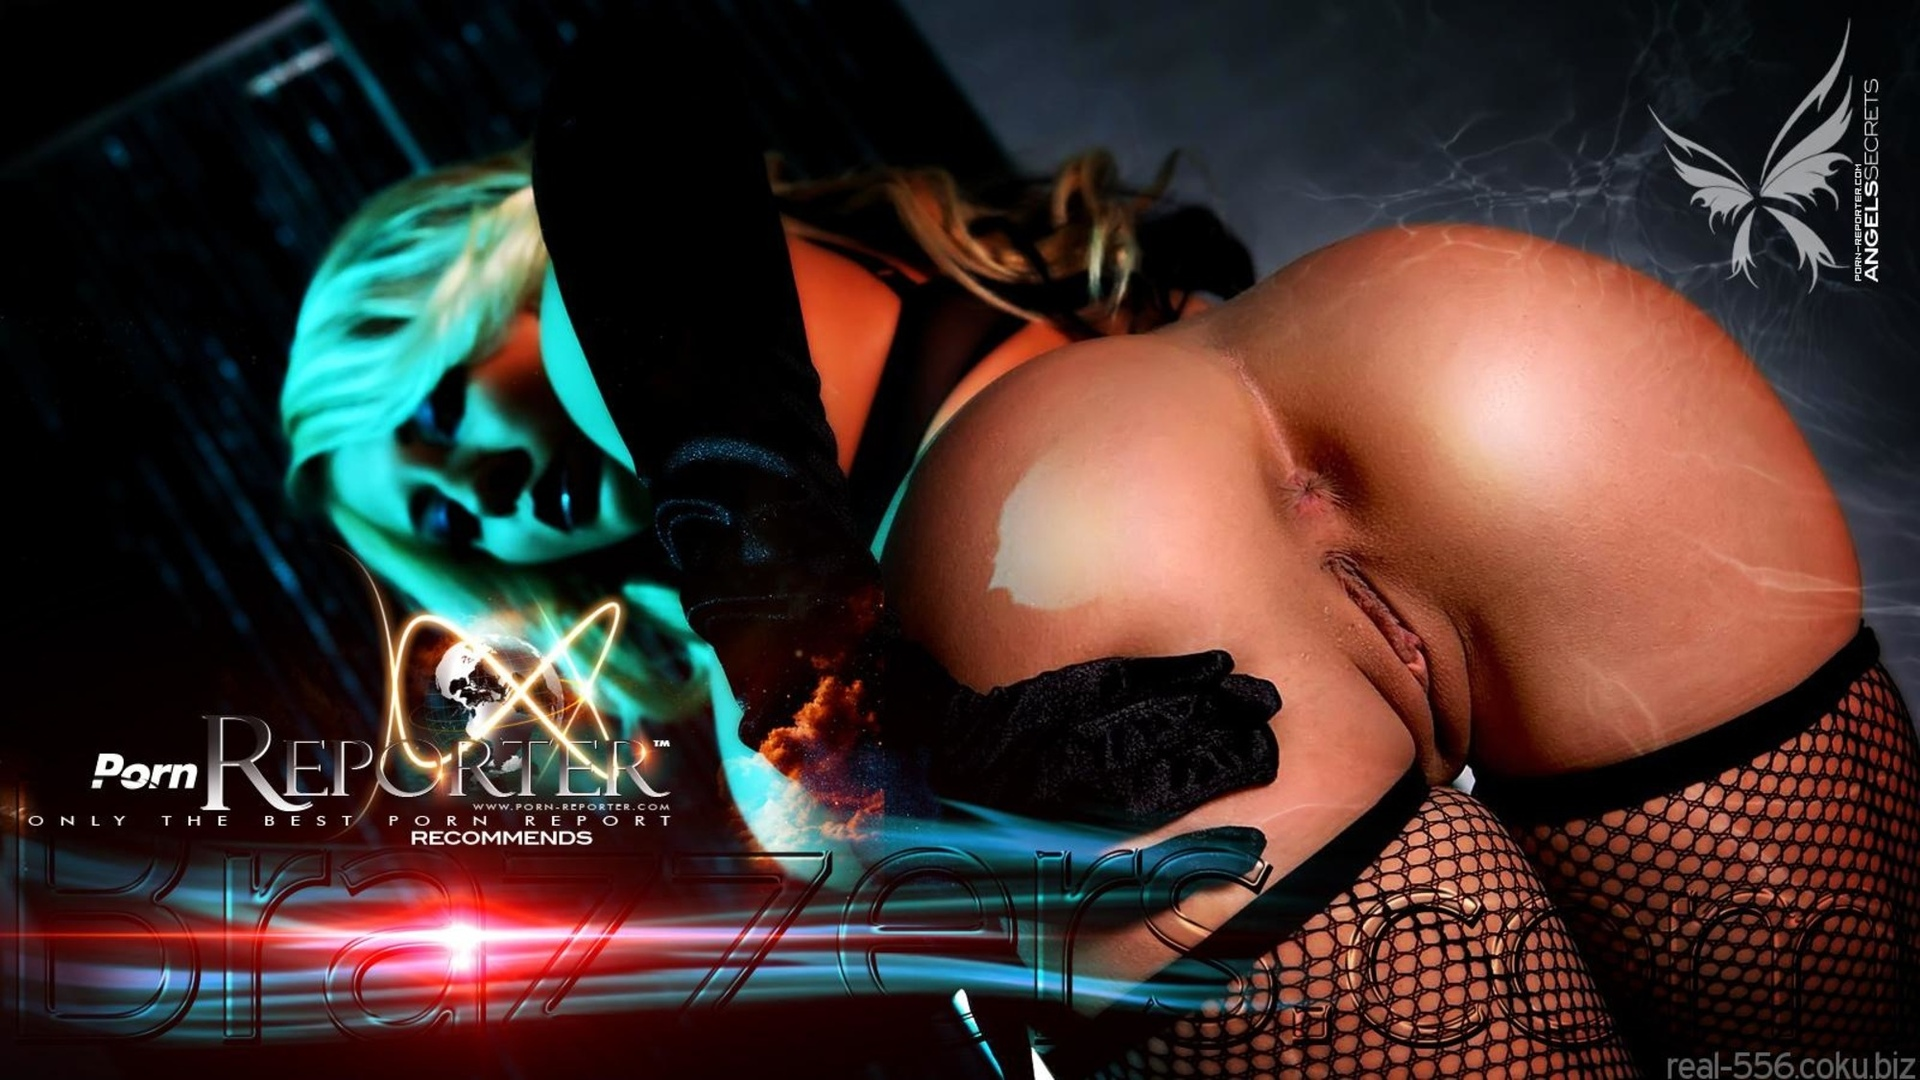 Free Naked Girl Screensaver Mobile Optimised Photo For Android Iphone